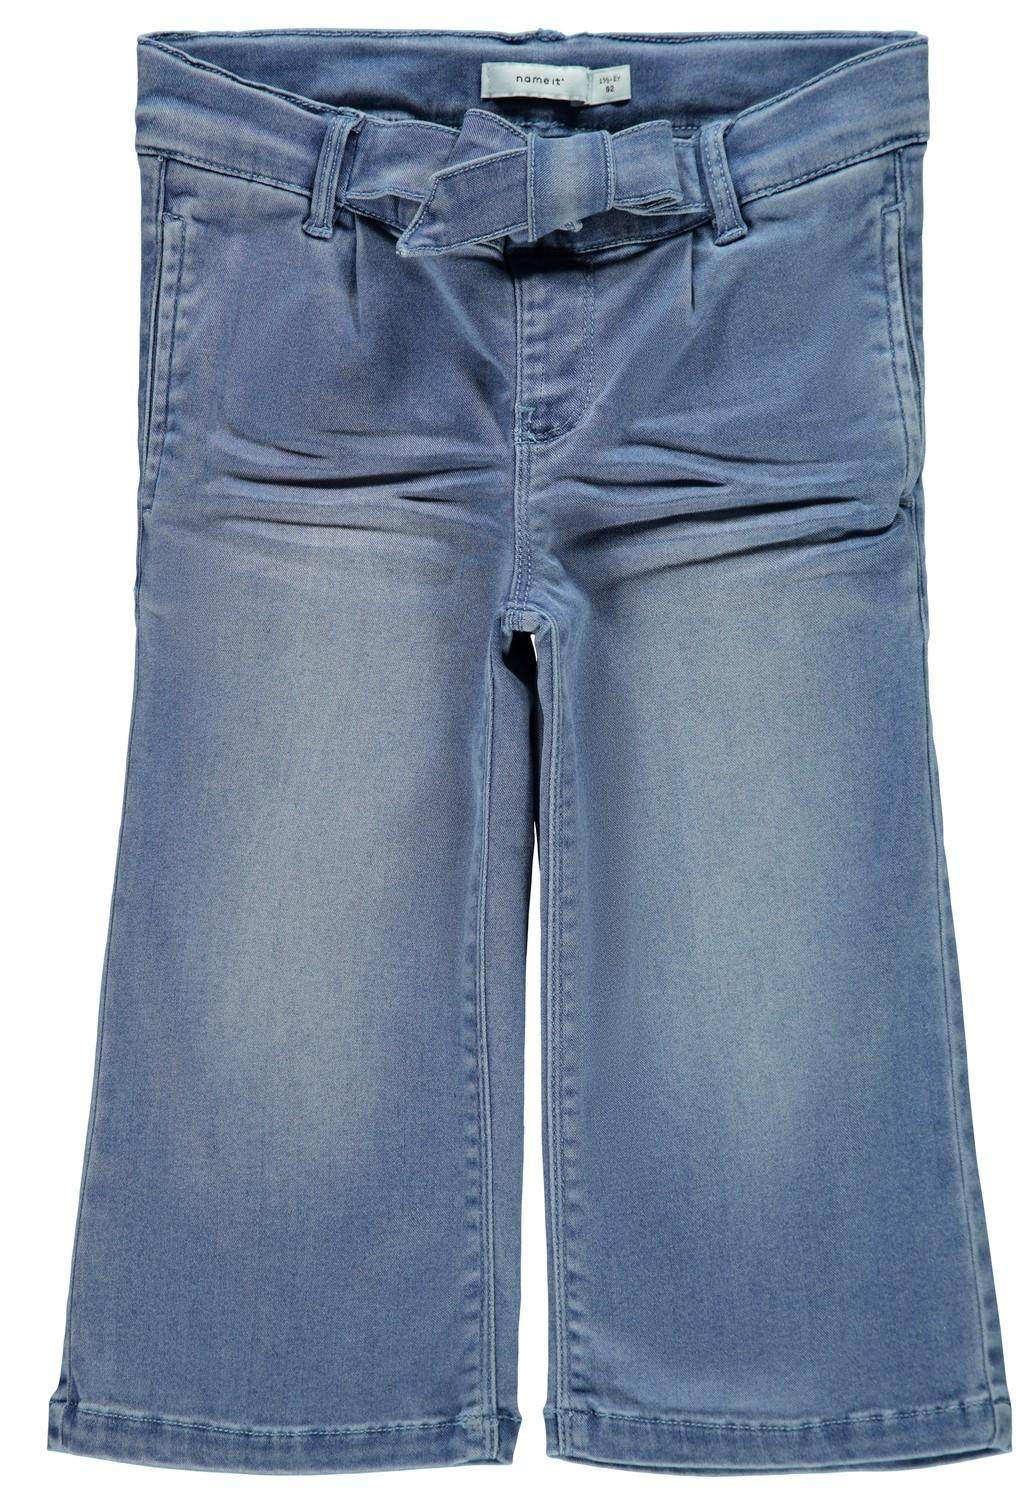 NAME IT REGULAR WIDE JEANS MED KNYTBAND